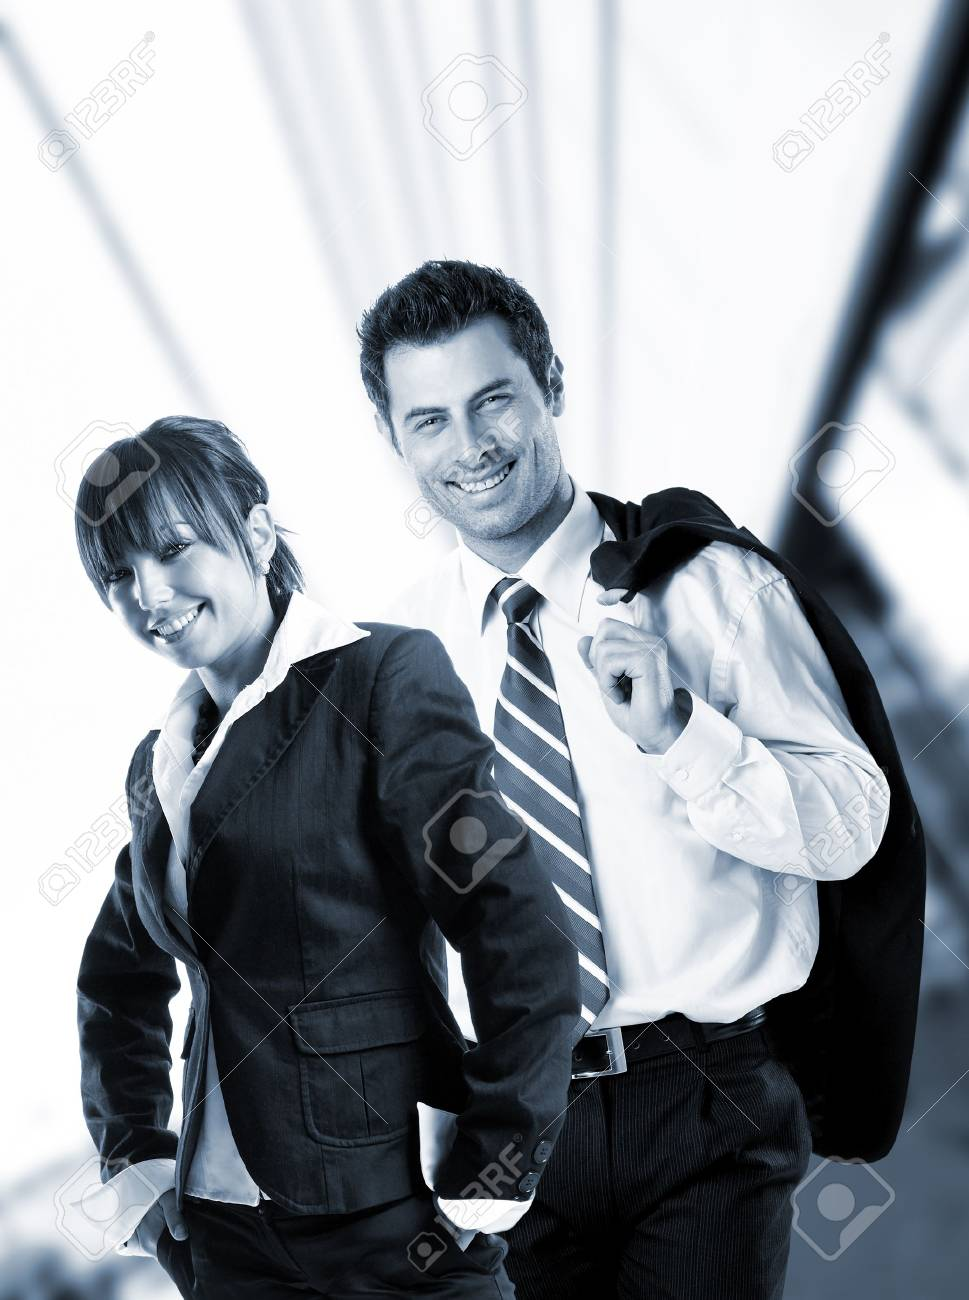 Attractive business people in front of a glass building - check my portfolio for similar photos Stock Photo - 1149402